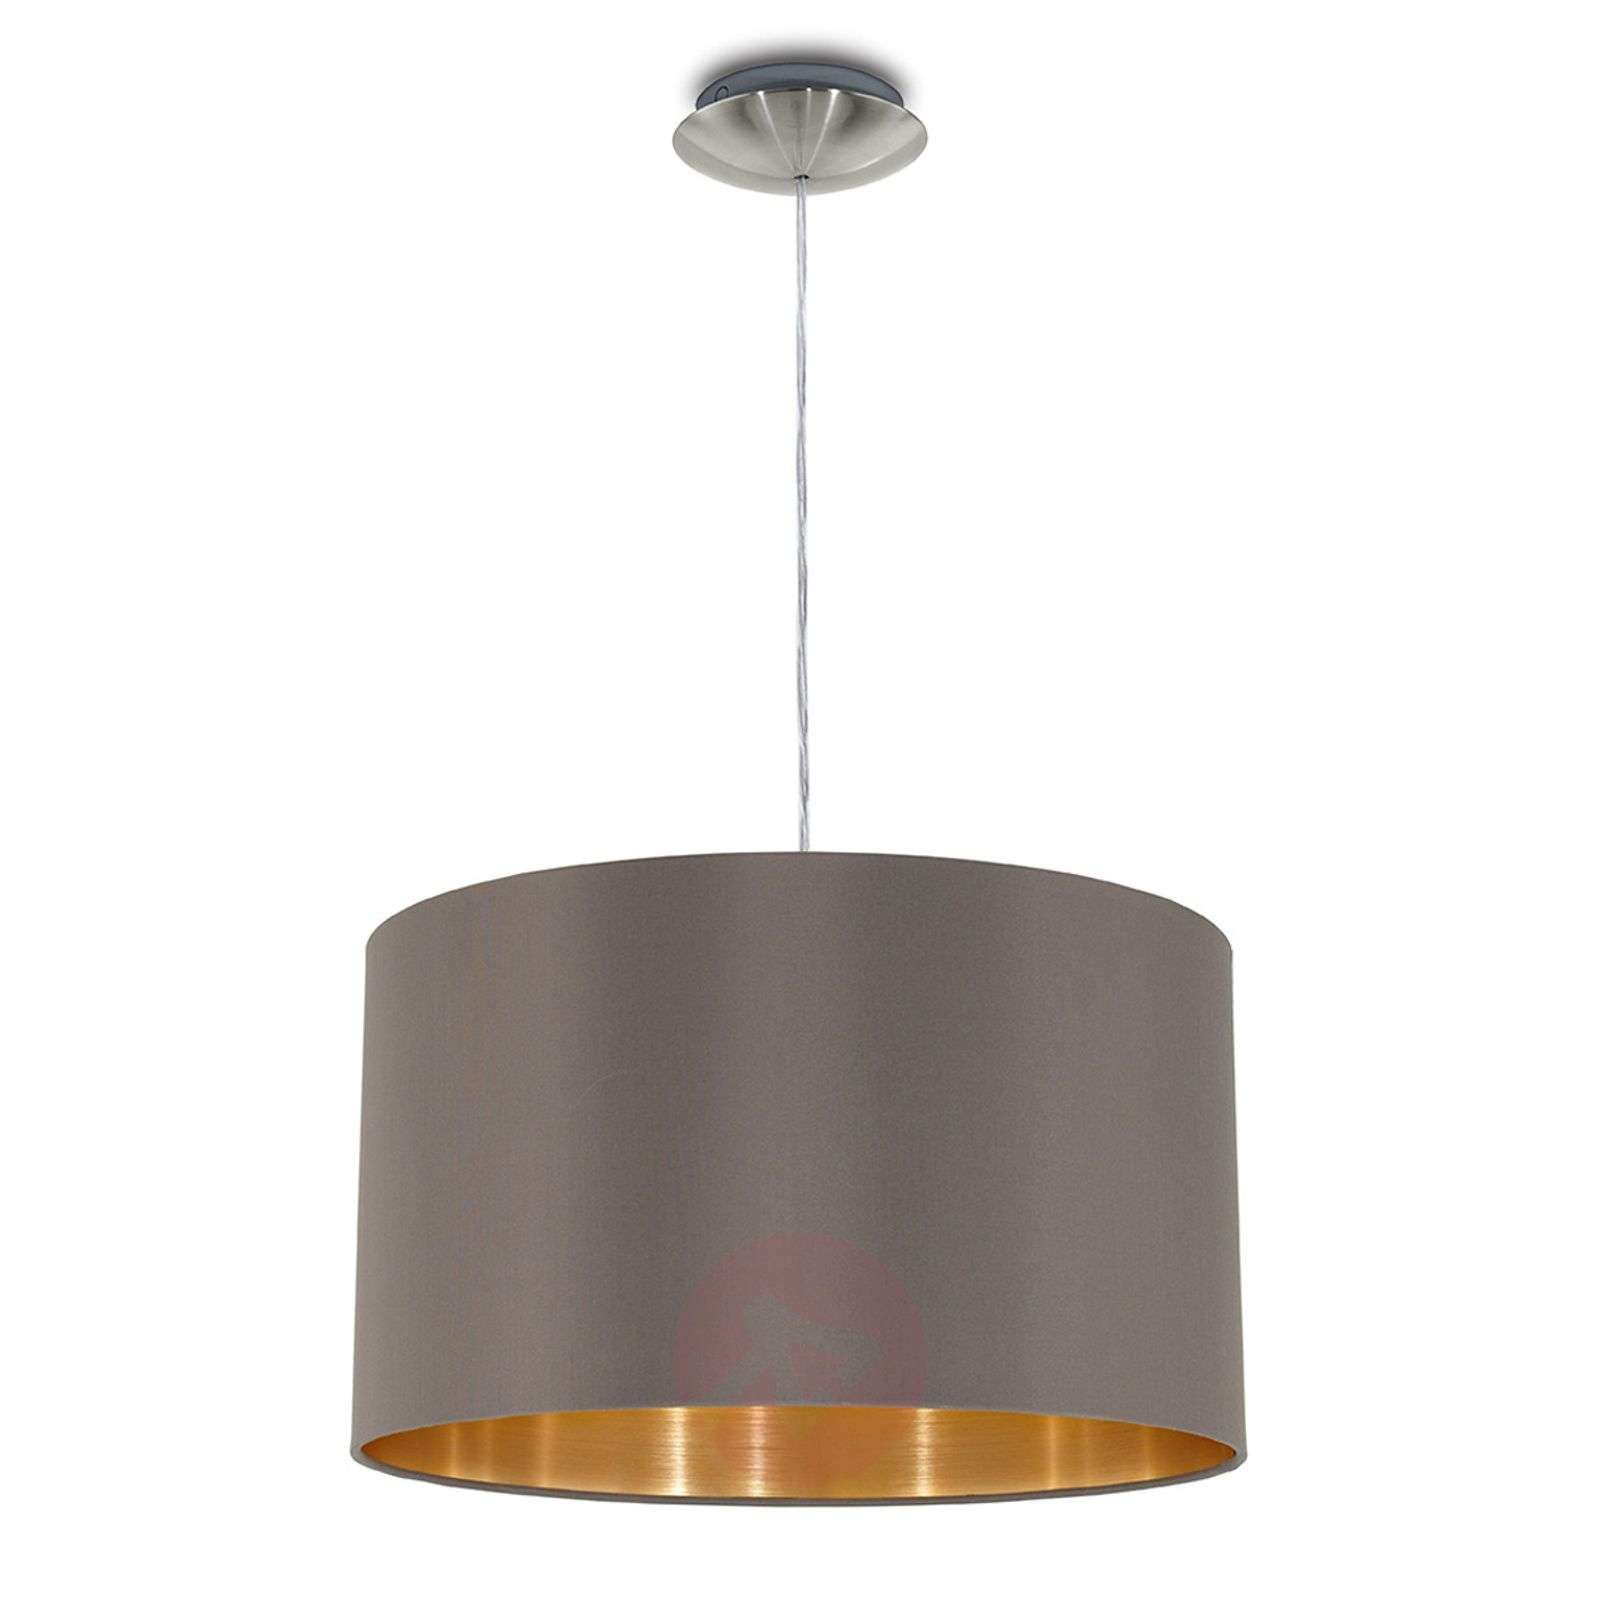 Carpi hanging light with a fabric lampshade-3031701-01